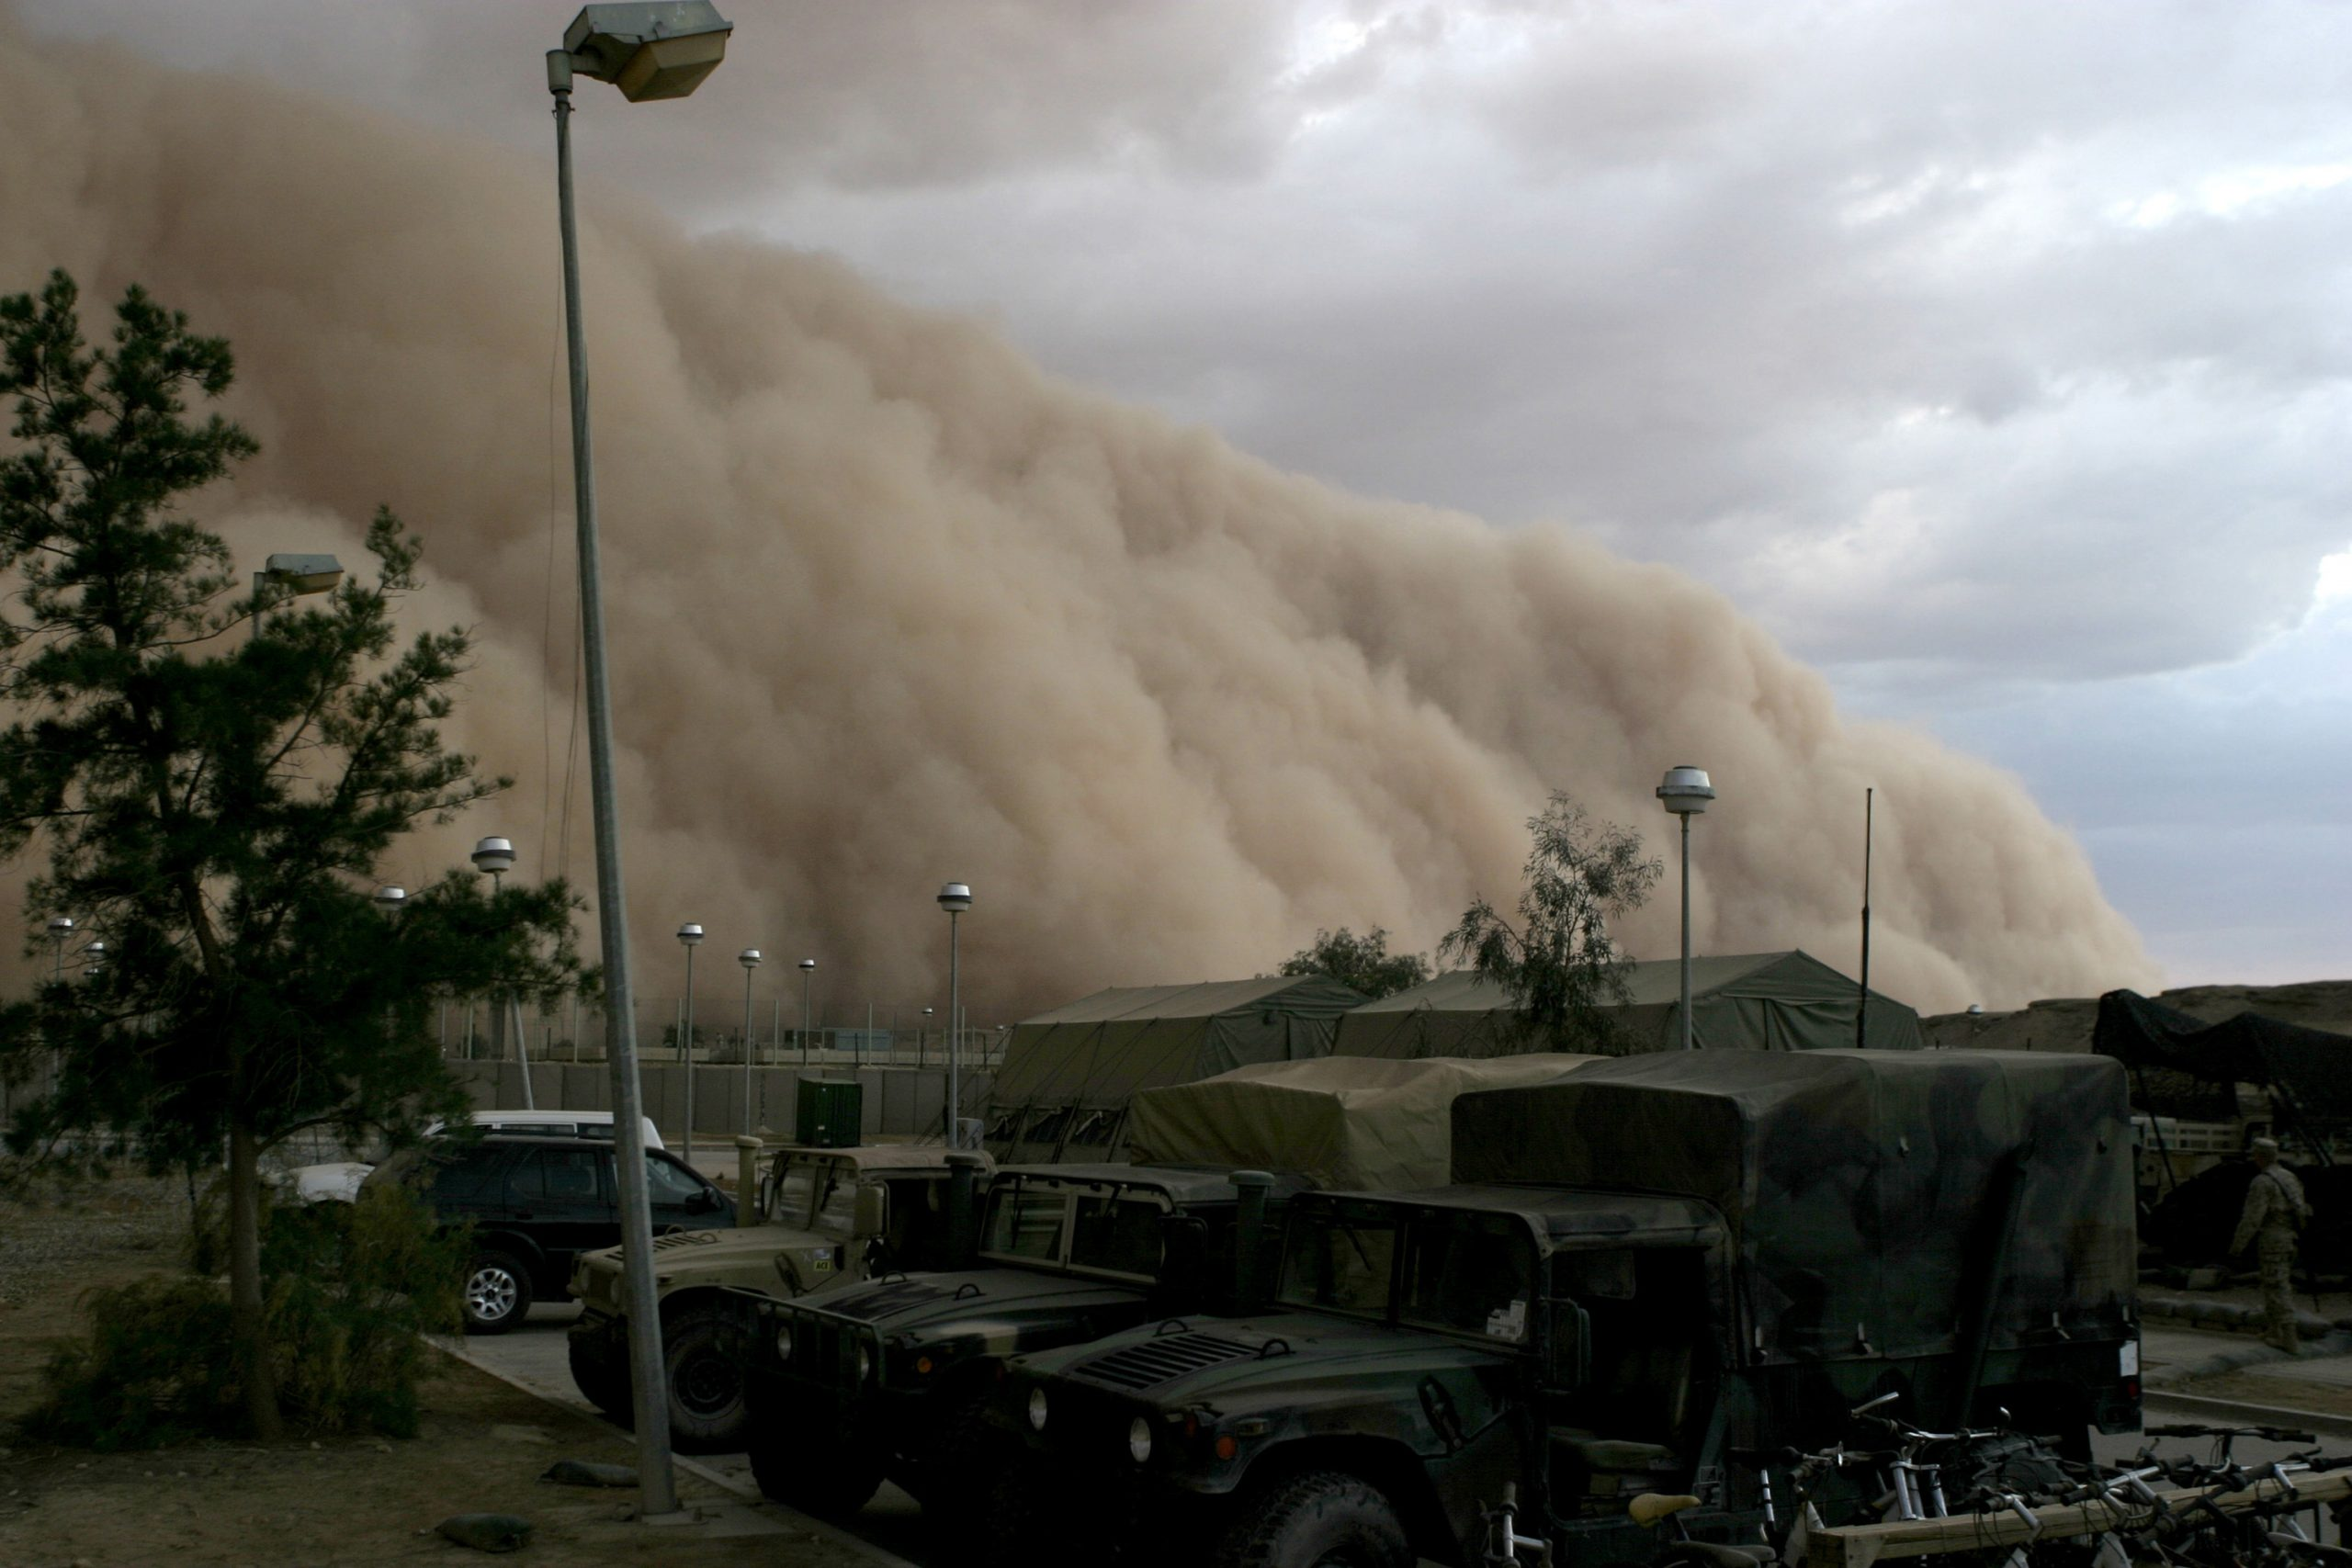 Sandstorm at an army base